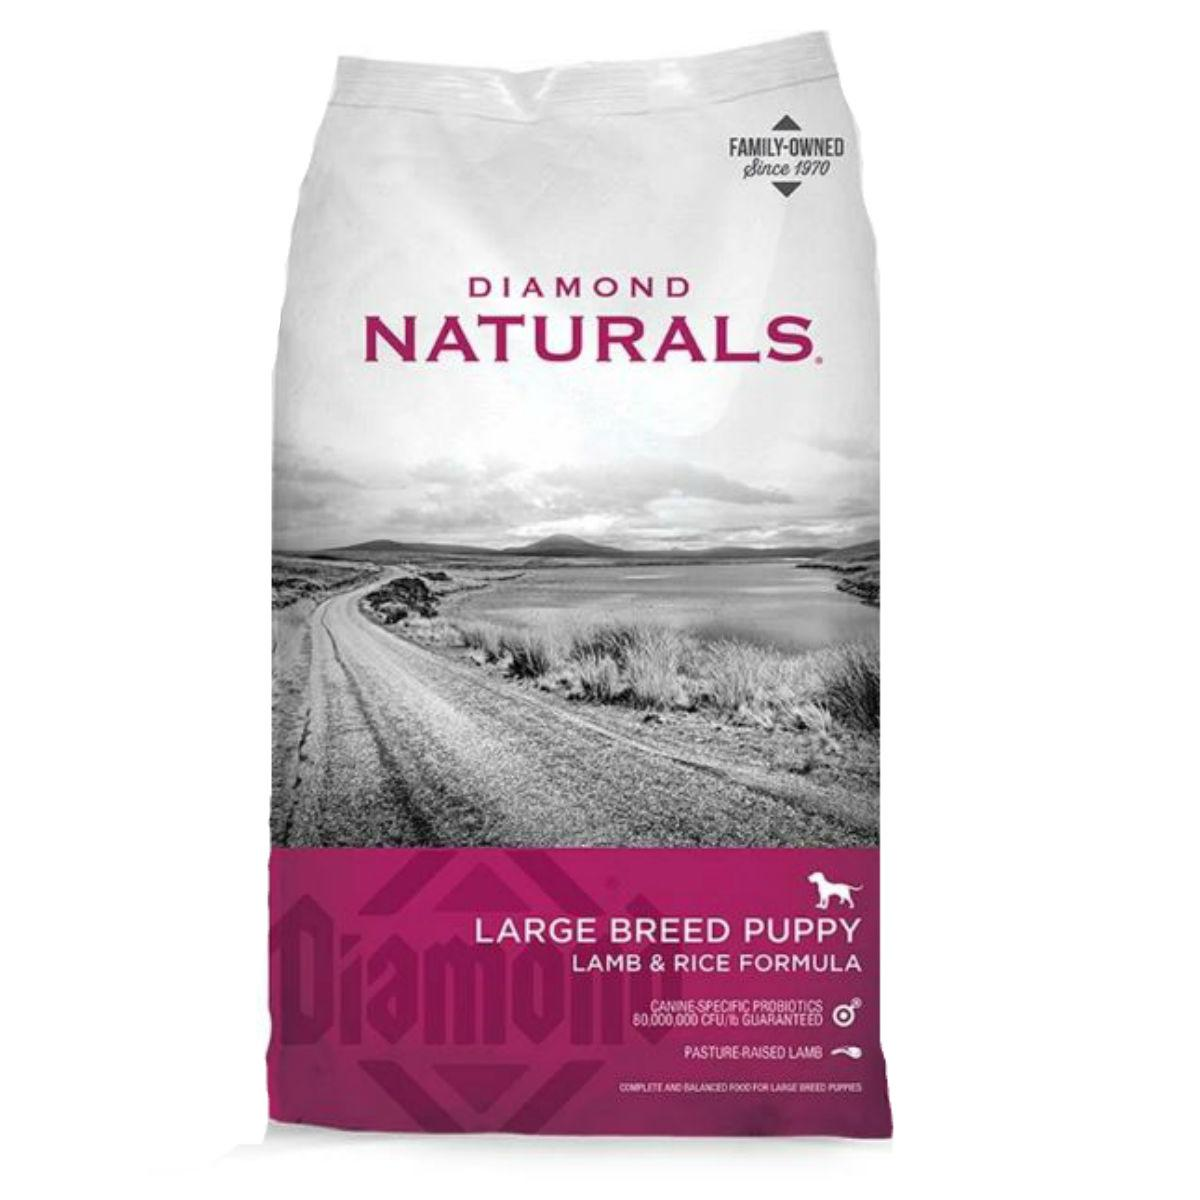 Diamond Naturals Large Breed Puppy Dog Food - Lamb and Rice